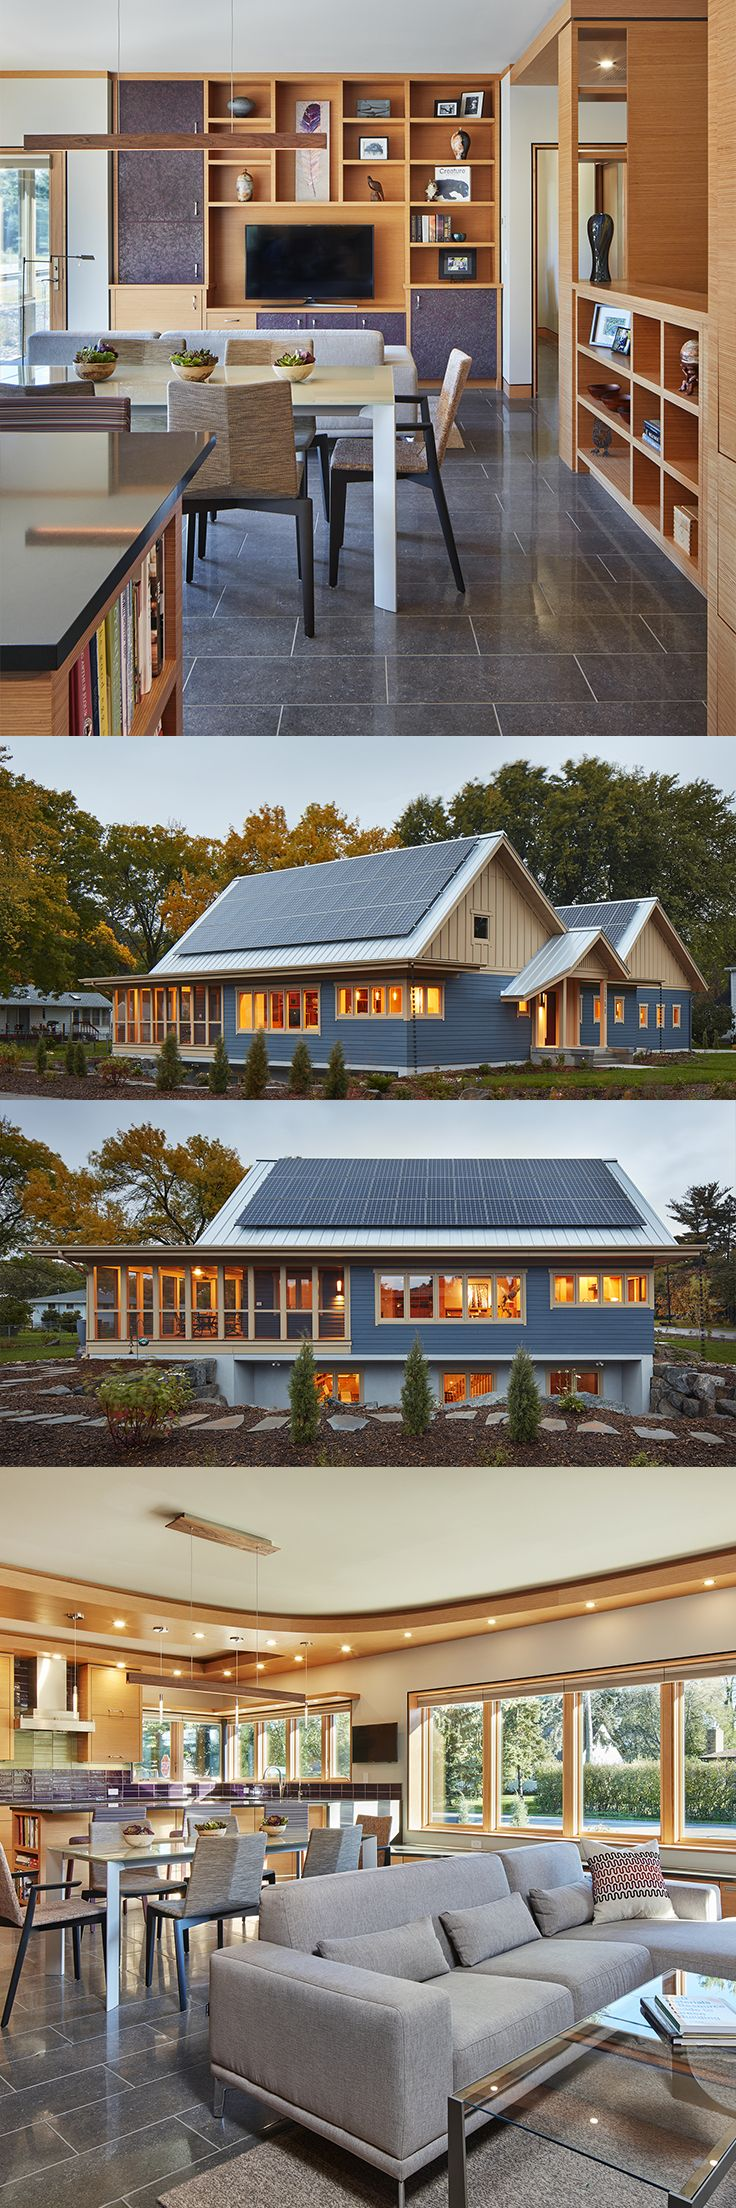 A home and landscape with intensive energy